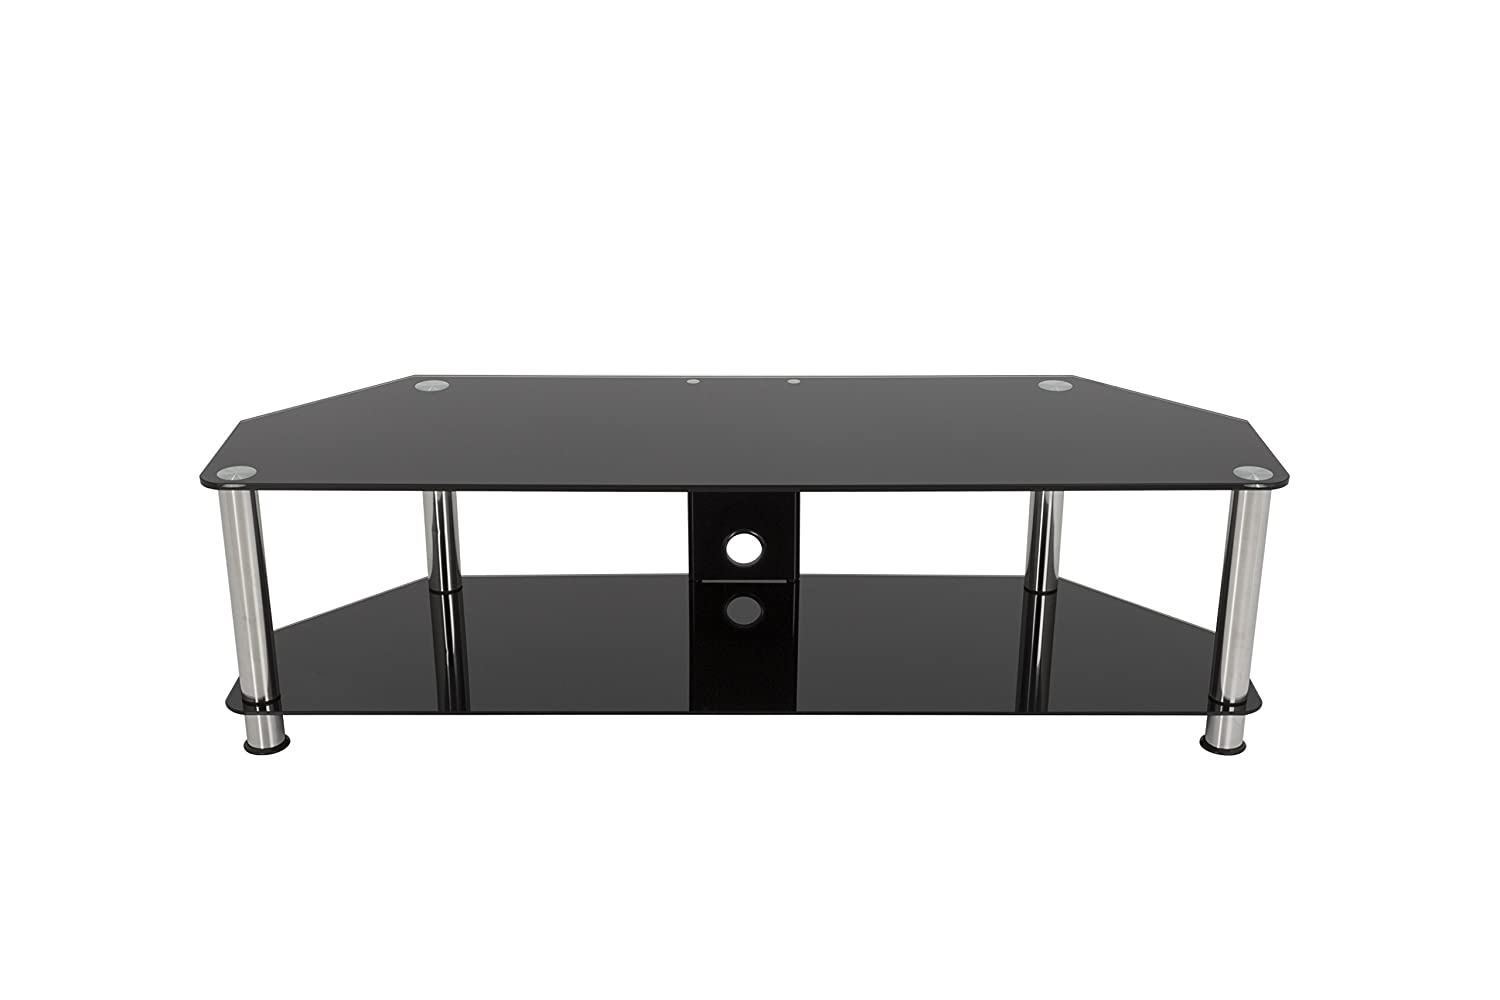 AVF SDC1400CM-A TV Stand with Cable Management for up to 65-inch TVs, Black Glass, Chrome Legs